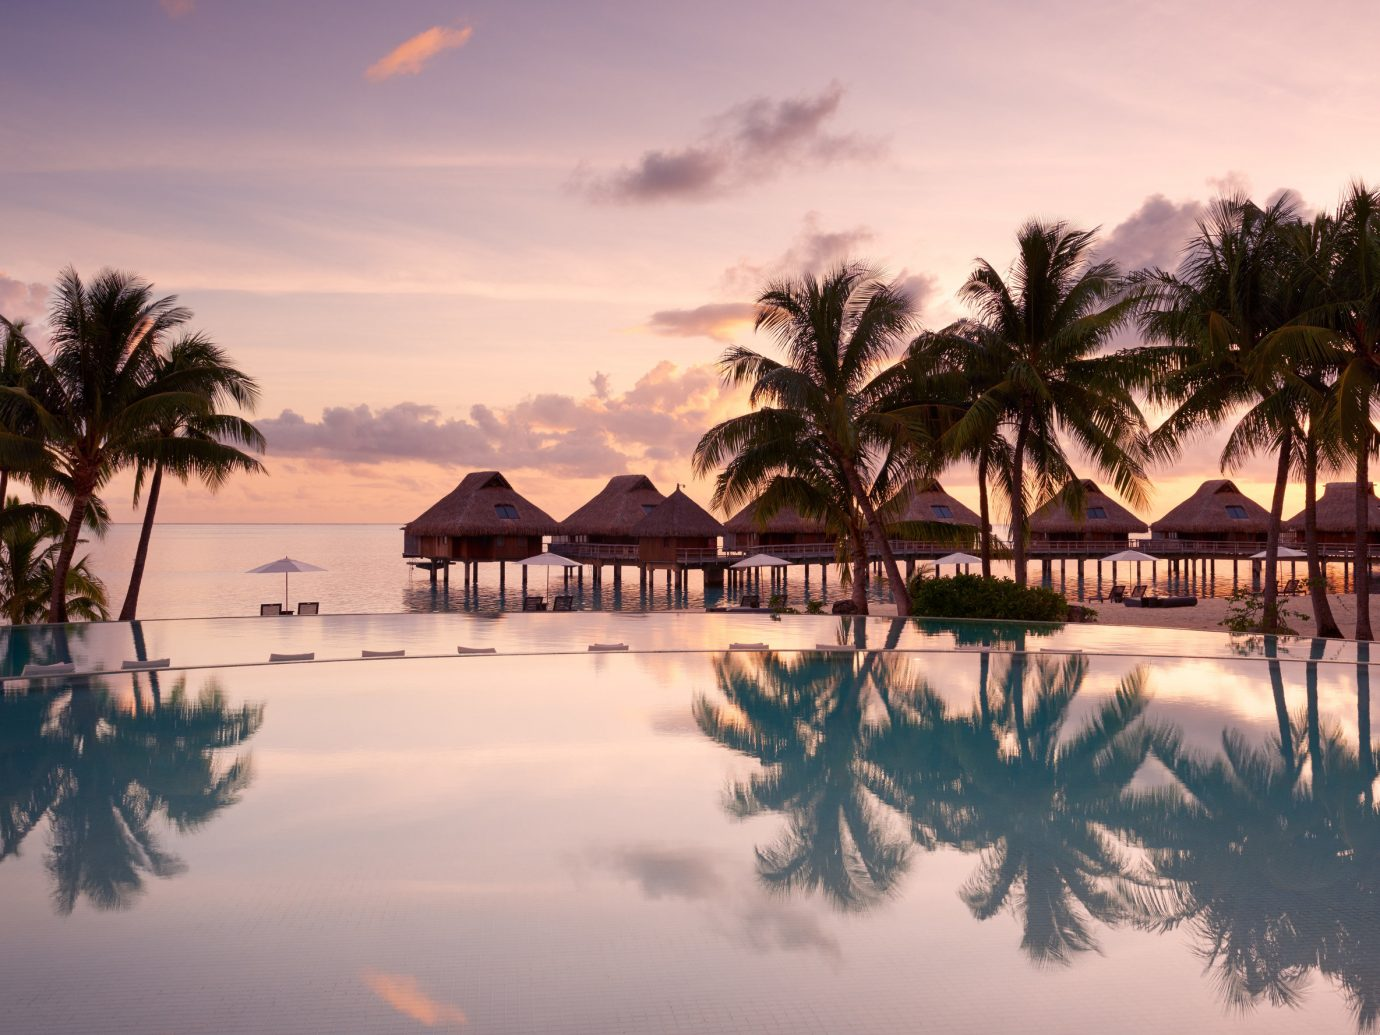 Hotels tree outdoor sky water reflection tropics plant palm palm tree Sunset arecales Resort vacation Sea evening caribbean morning horizon dusk Ocean tourism sunrise setting calm computer wallpaper dawn cloud leisure Lagoon shore several